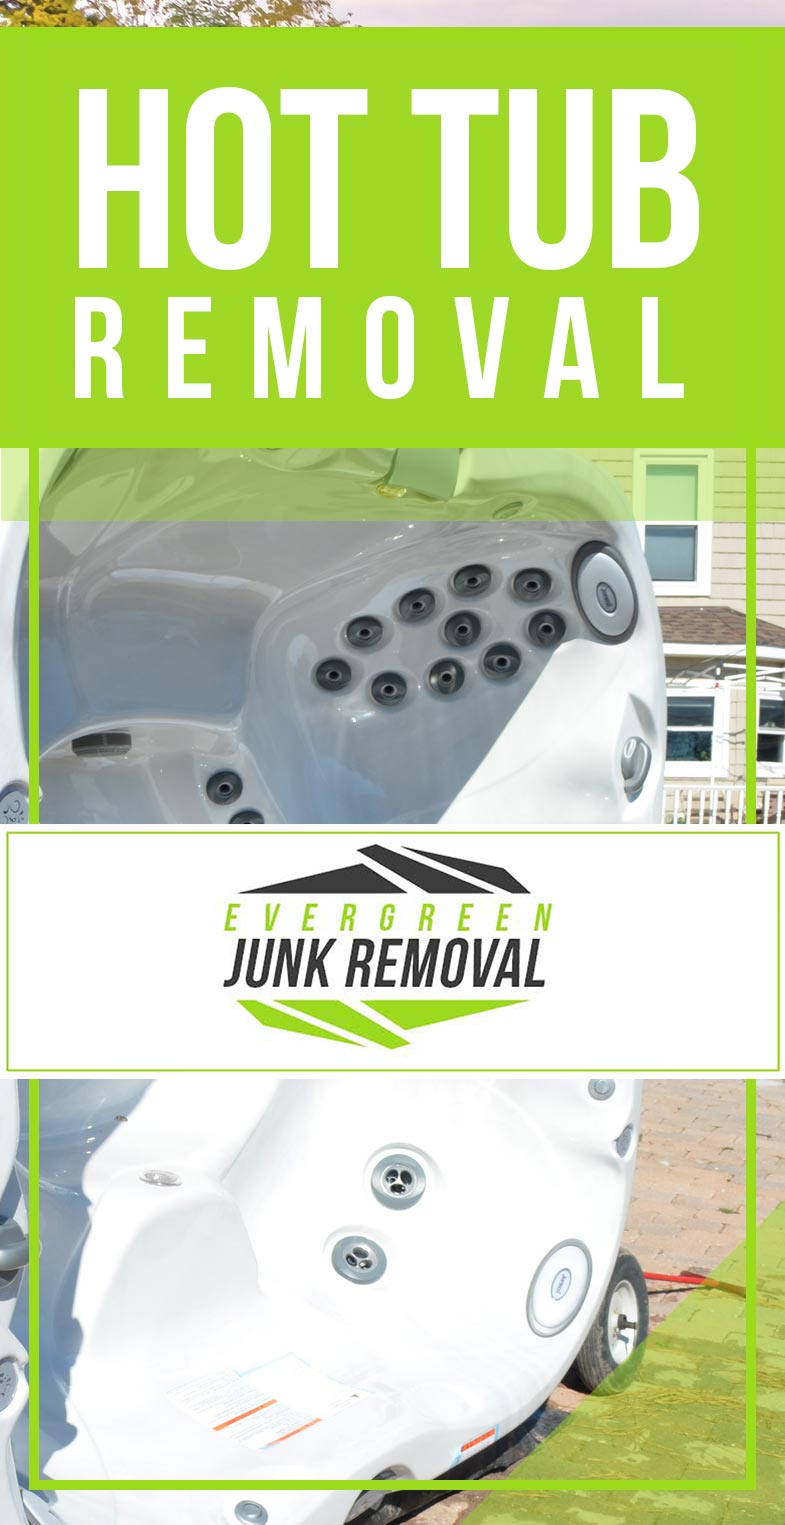 Del Mar Hot Tub Removal